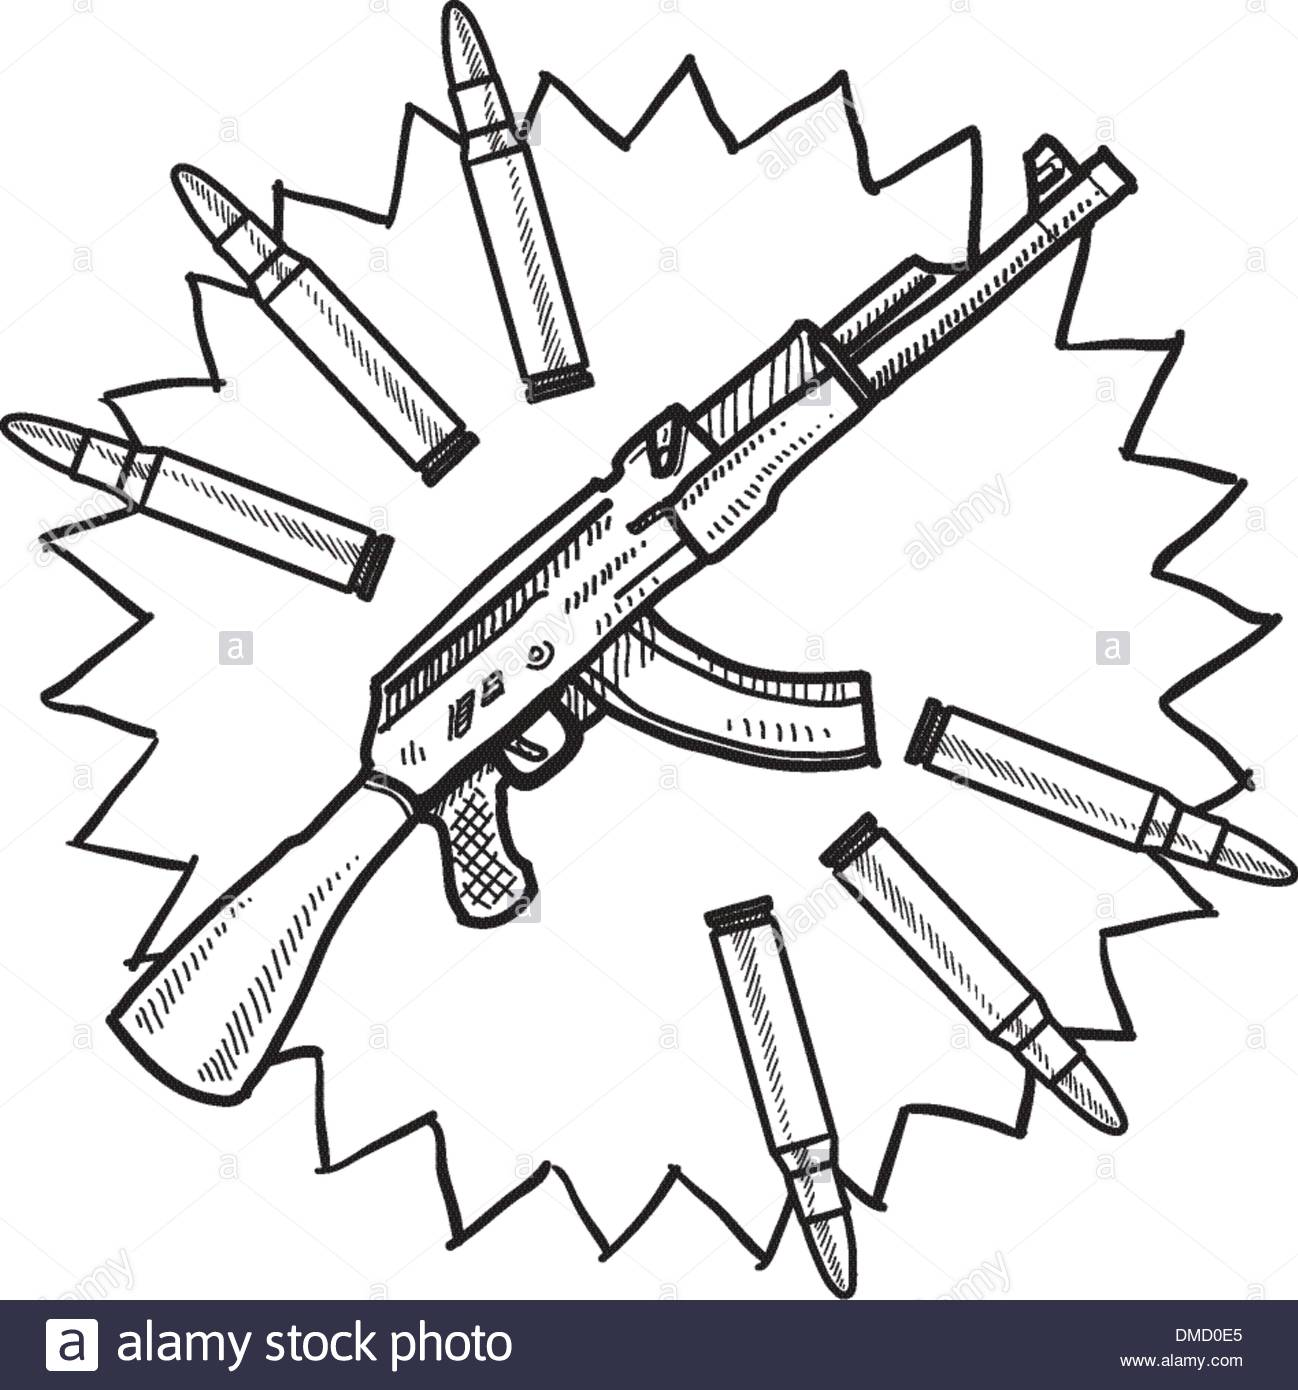 1298x1390 Assault Rifle Sketch Stock Vector Art Amp Illustration, Vector Image